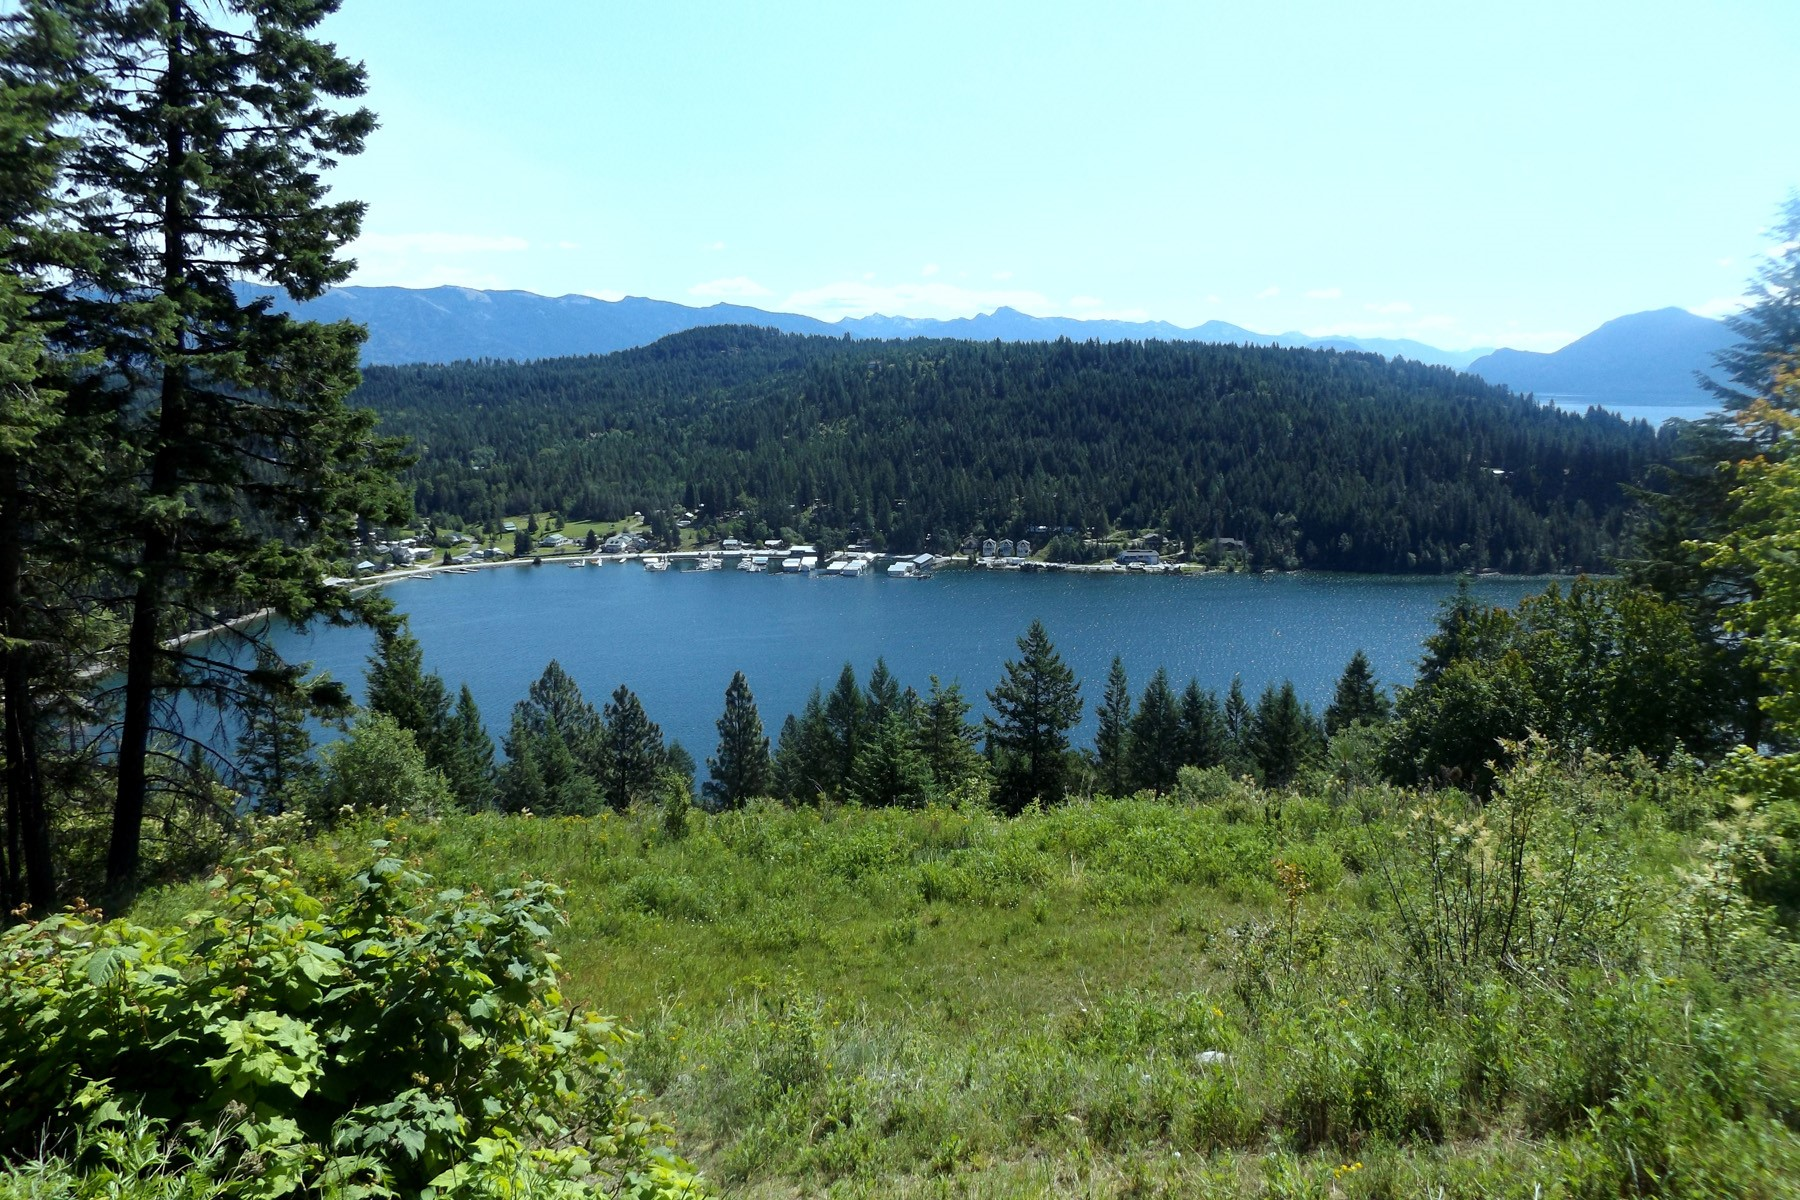 Land for Sale at Stunning View Property Ready to Build Lot 11 Midas Drive Sagle, Idaho, 83860 United States